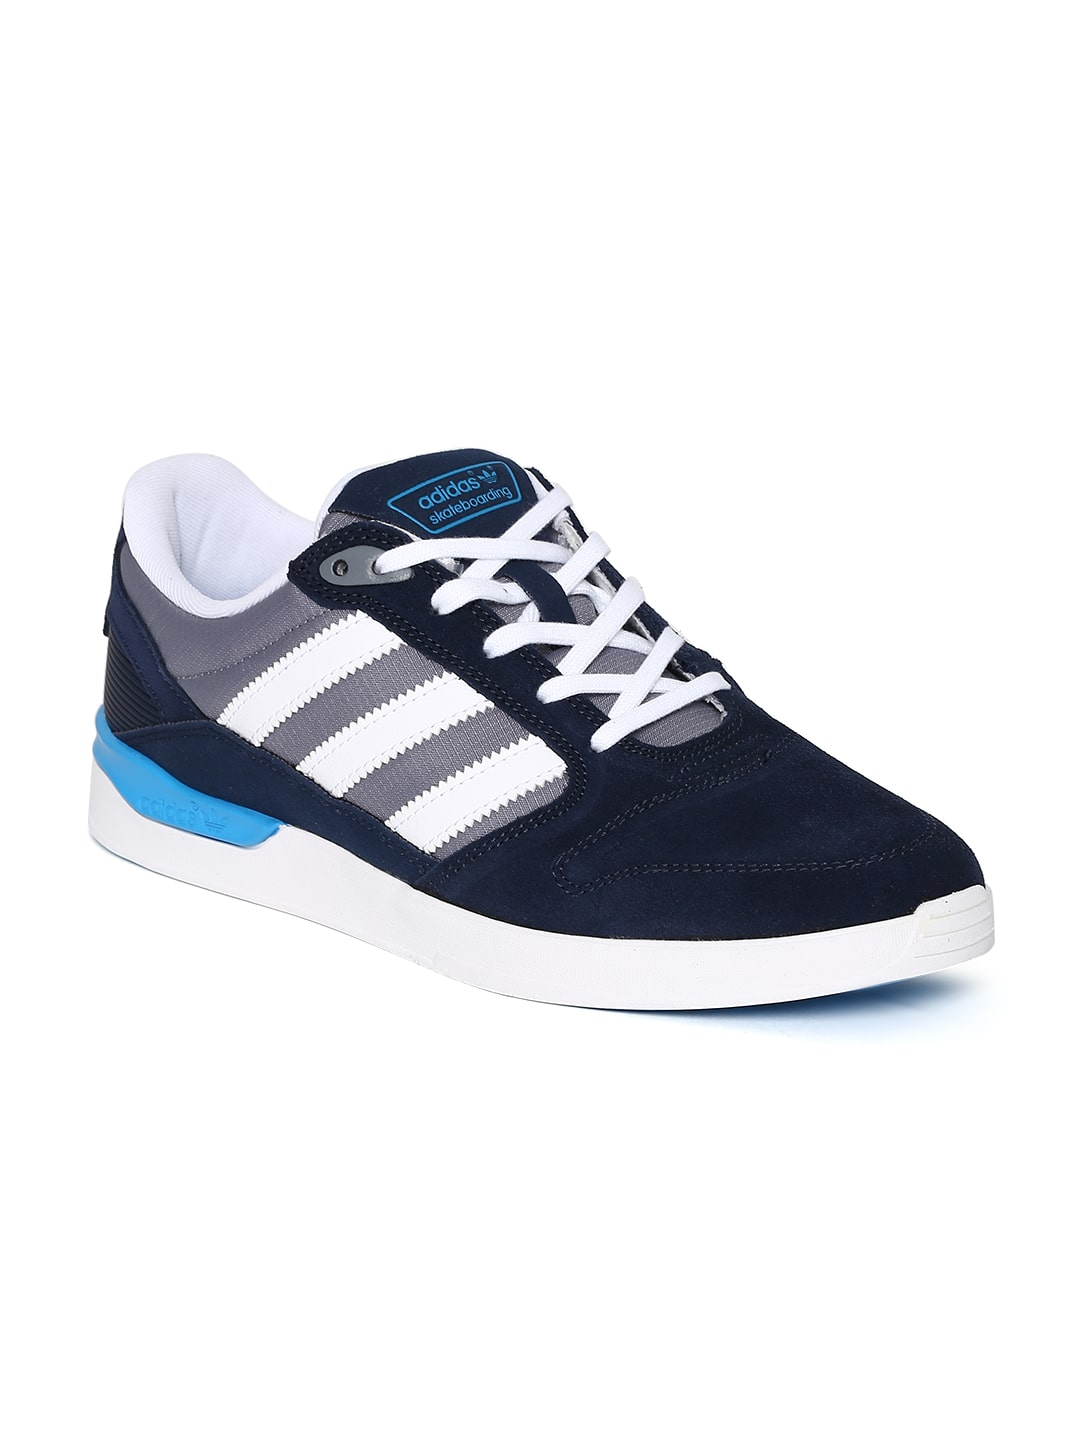 dd7bdef2a ... new zealand adidas c75187 originals men navy grey zx vulc suede  skateboarding shoes price in india